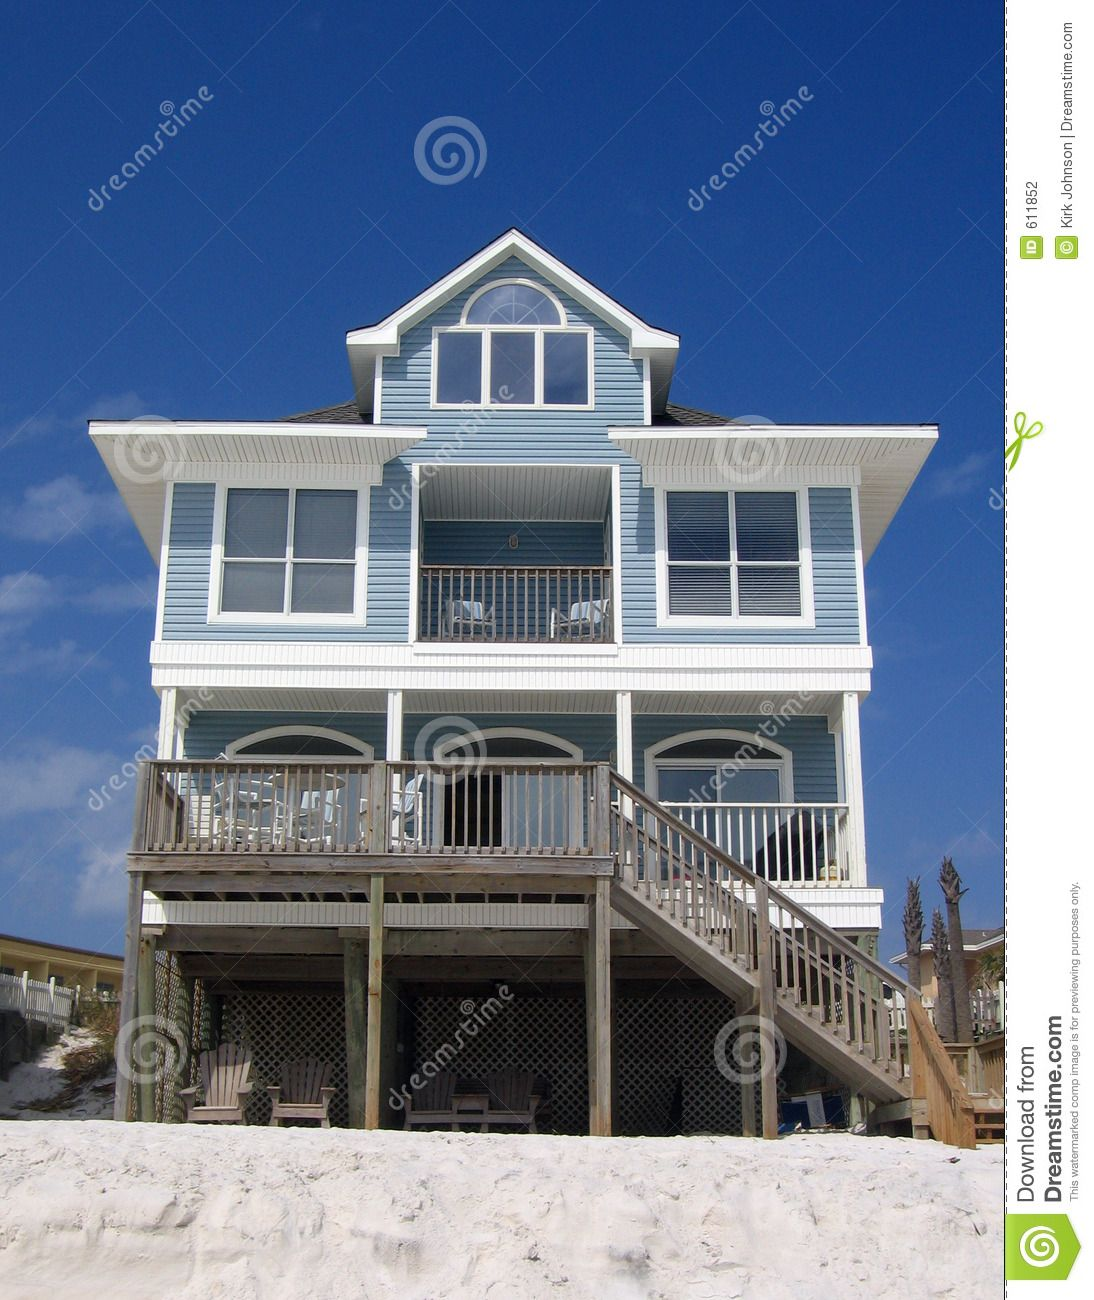 Blue Beach Rental Cottage - Download From Over 65 Million High ... on beach houses in gulf shores, beach house rental in alabama, ranch style homes, dominican republic homes,